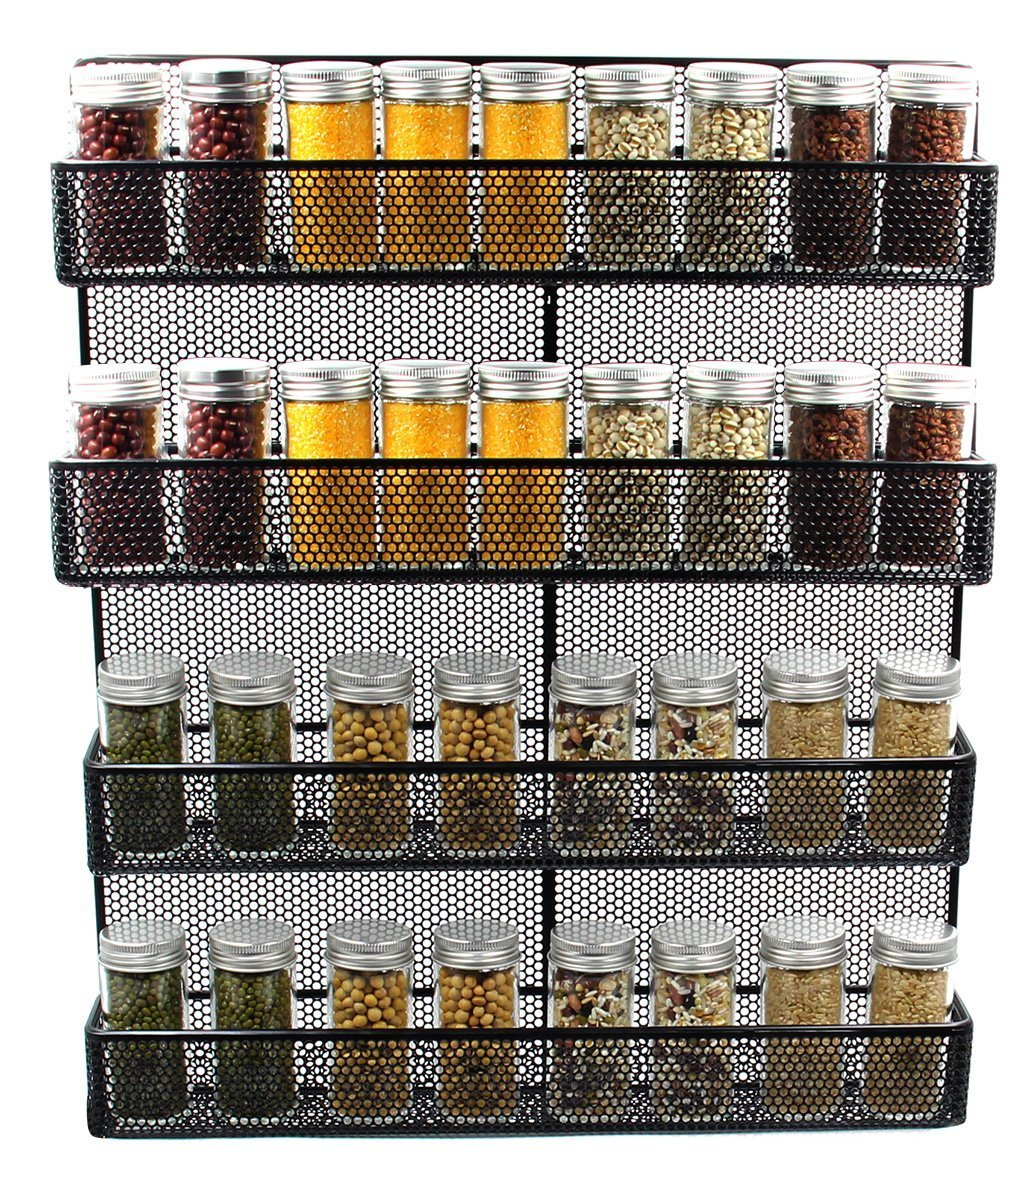 Amazon.com: ESYLIFE 4 Tier Large Wall Mounted Wire Spice Rack ...